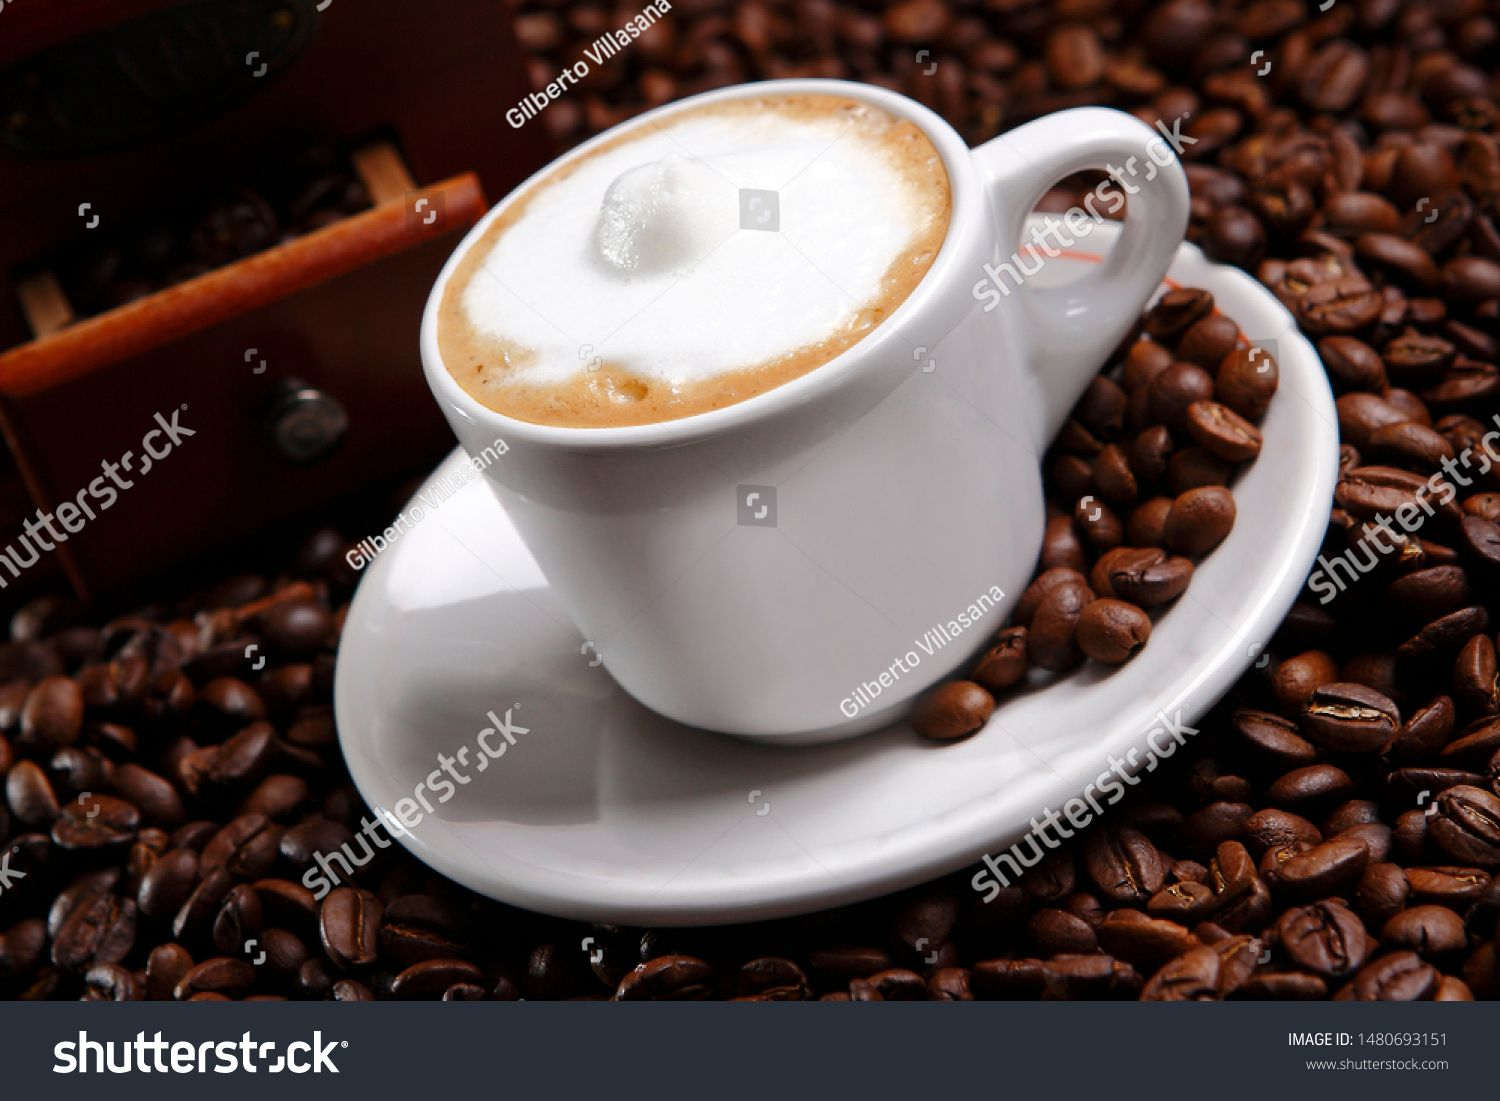 A Cappuccino Is An Espresso Based Coffee Drink That Originated In Italy And Is Traditionally Prepared With Steam Milk Ad S Coffee Drinks Cappuccino Drinks